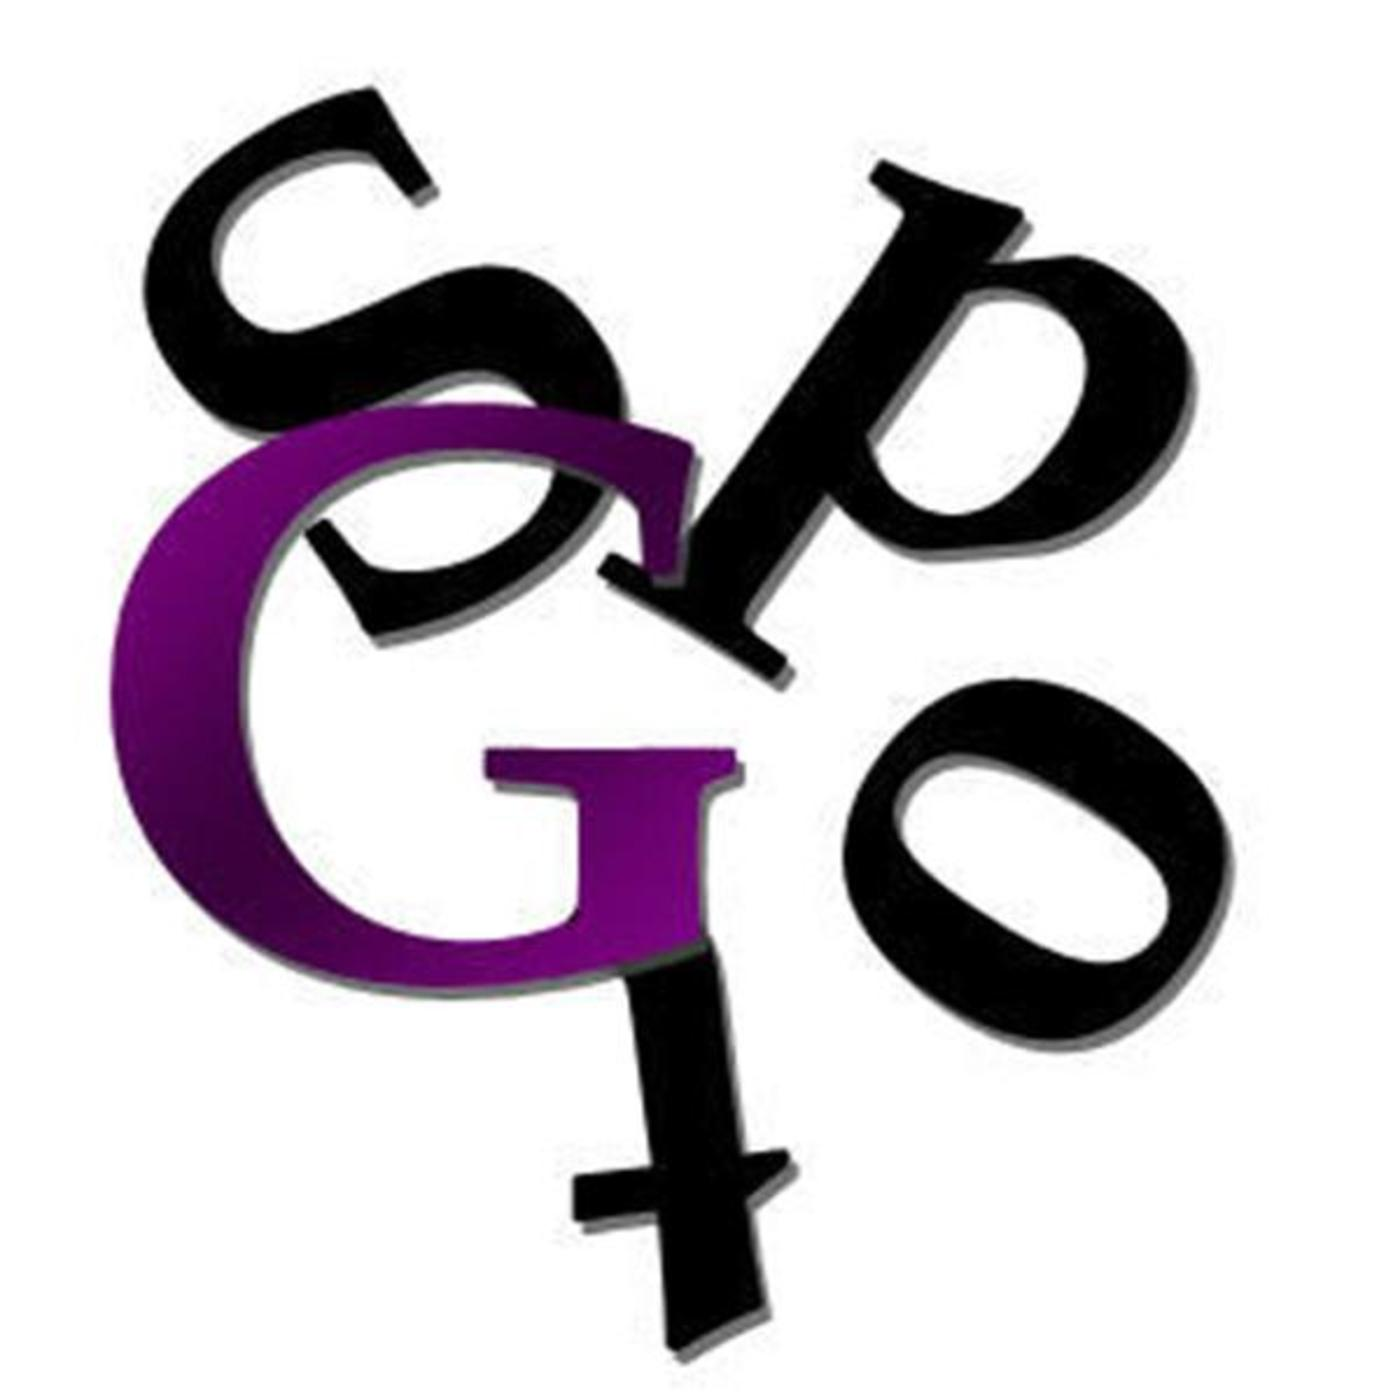 G-Spot Radio Show: Find Your G-Spot!!!